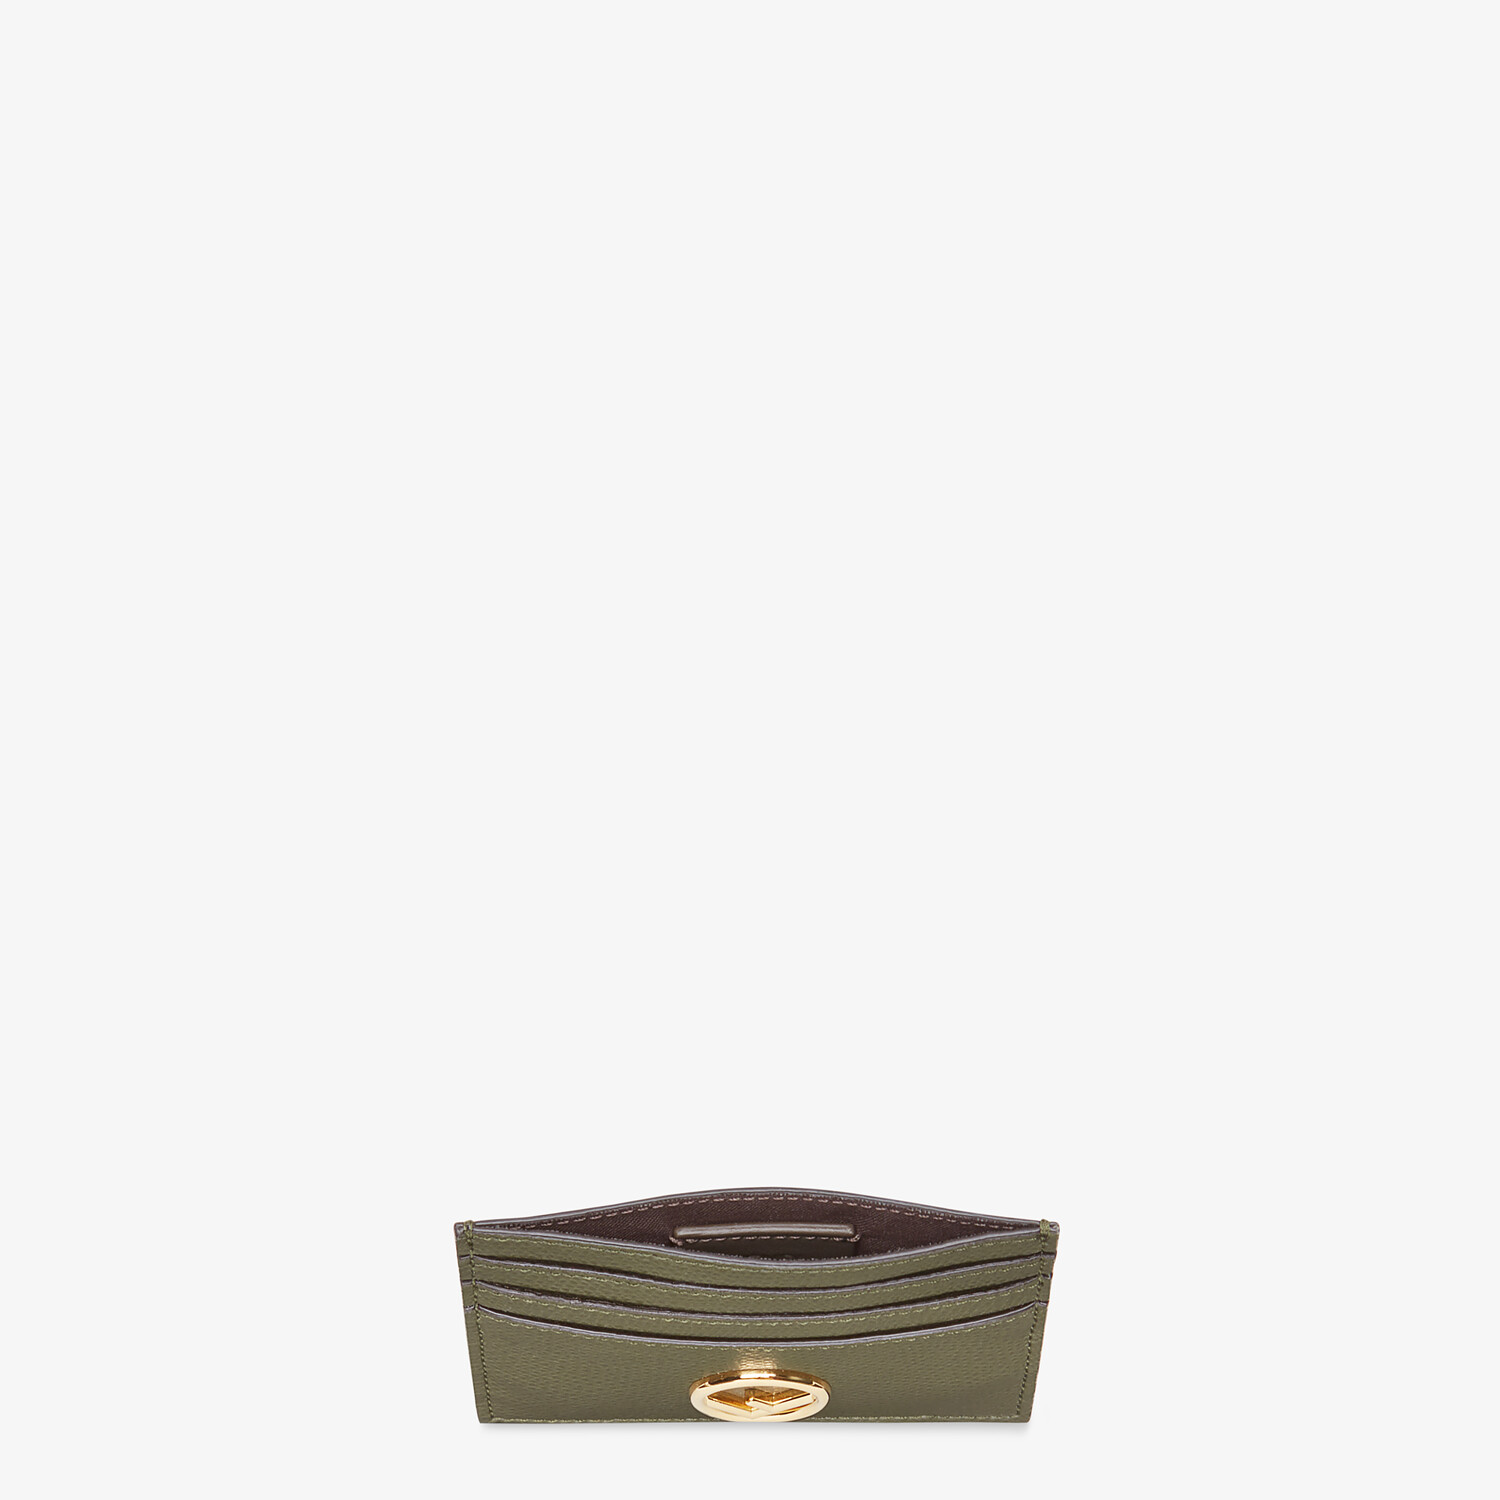 FENDI CARD CASE - Green leather flat card holder - view 3 detail